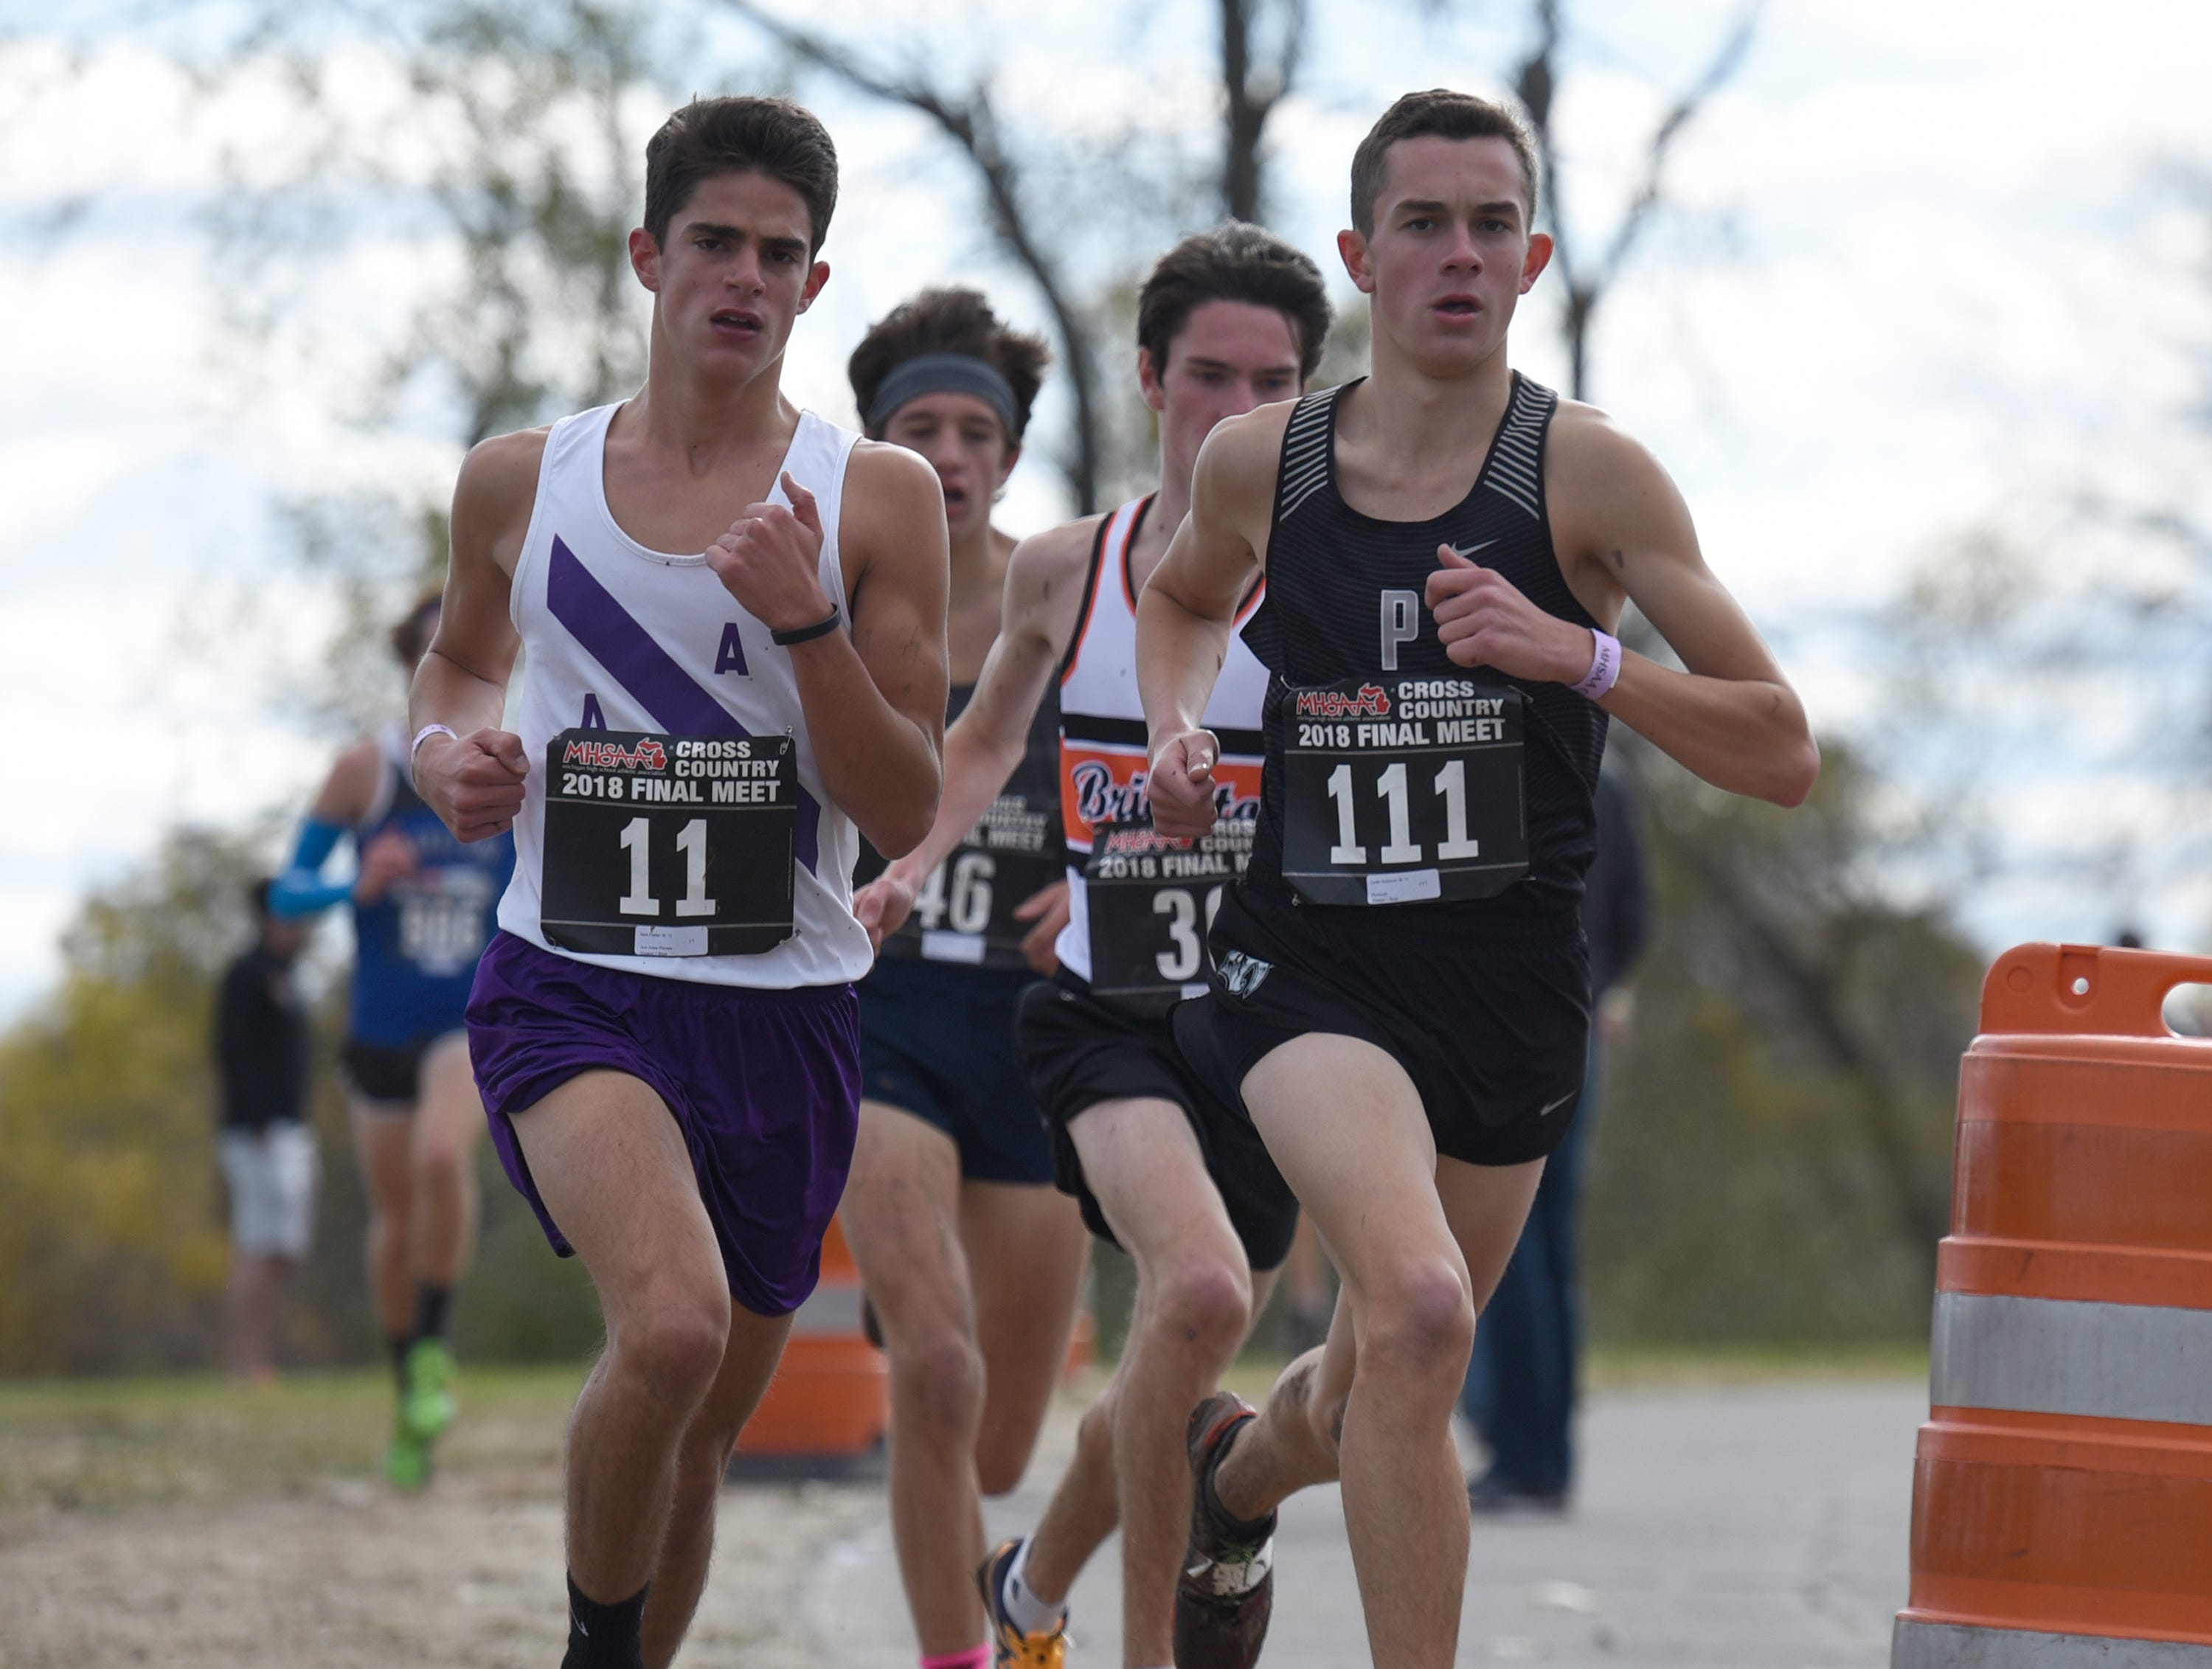 Plymouth boys win state Division 1 cross country championship